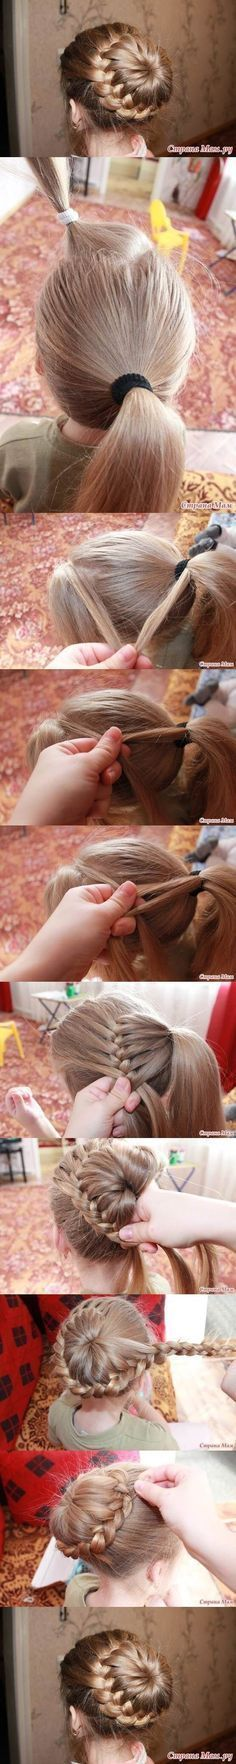 Latest Adorable Hairstyles for Little Girls Cute hairstyles for girls are the fastest changing sector of hair-fashion, so if you haven't checked what's new for